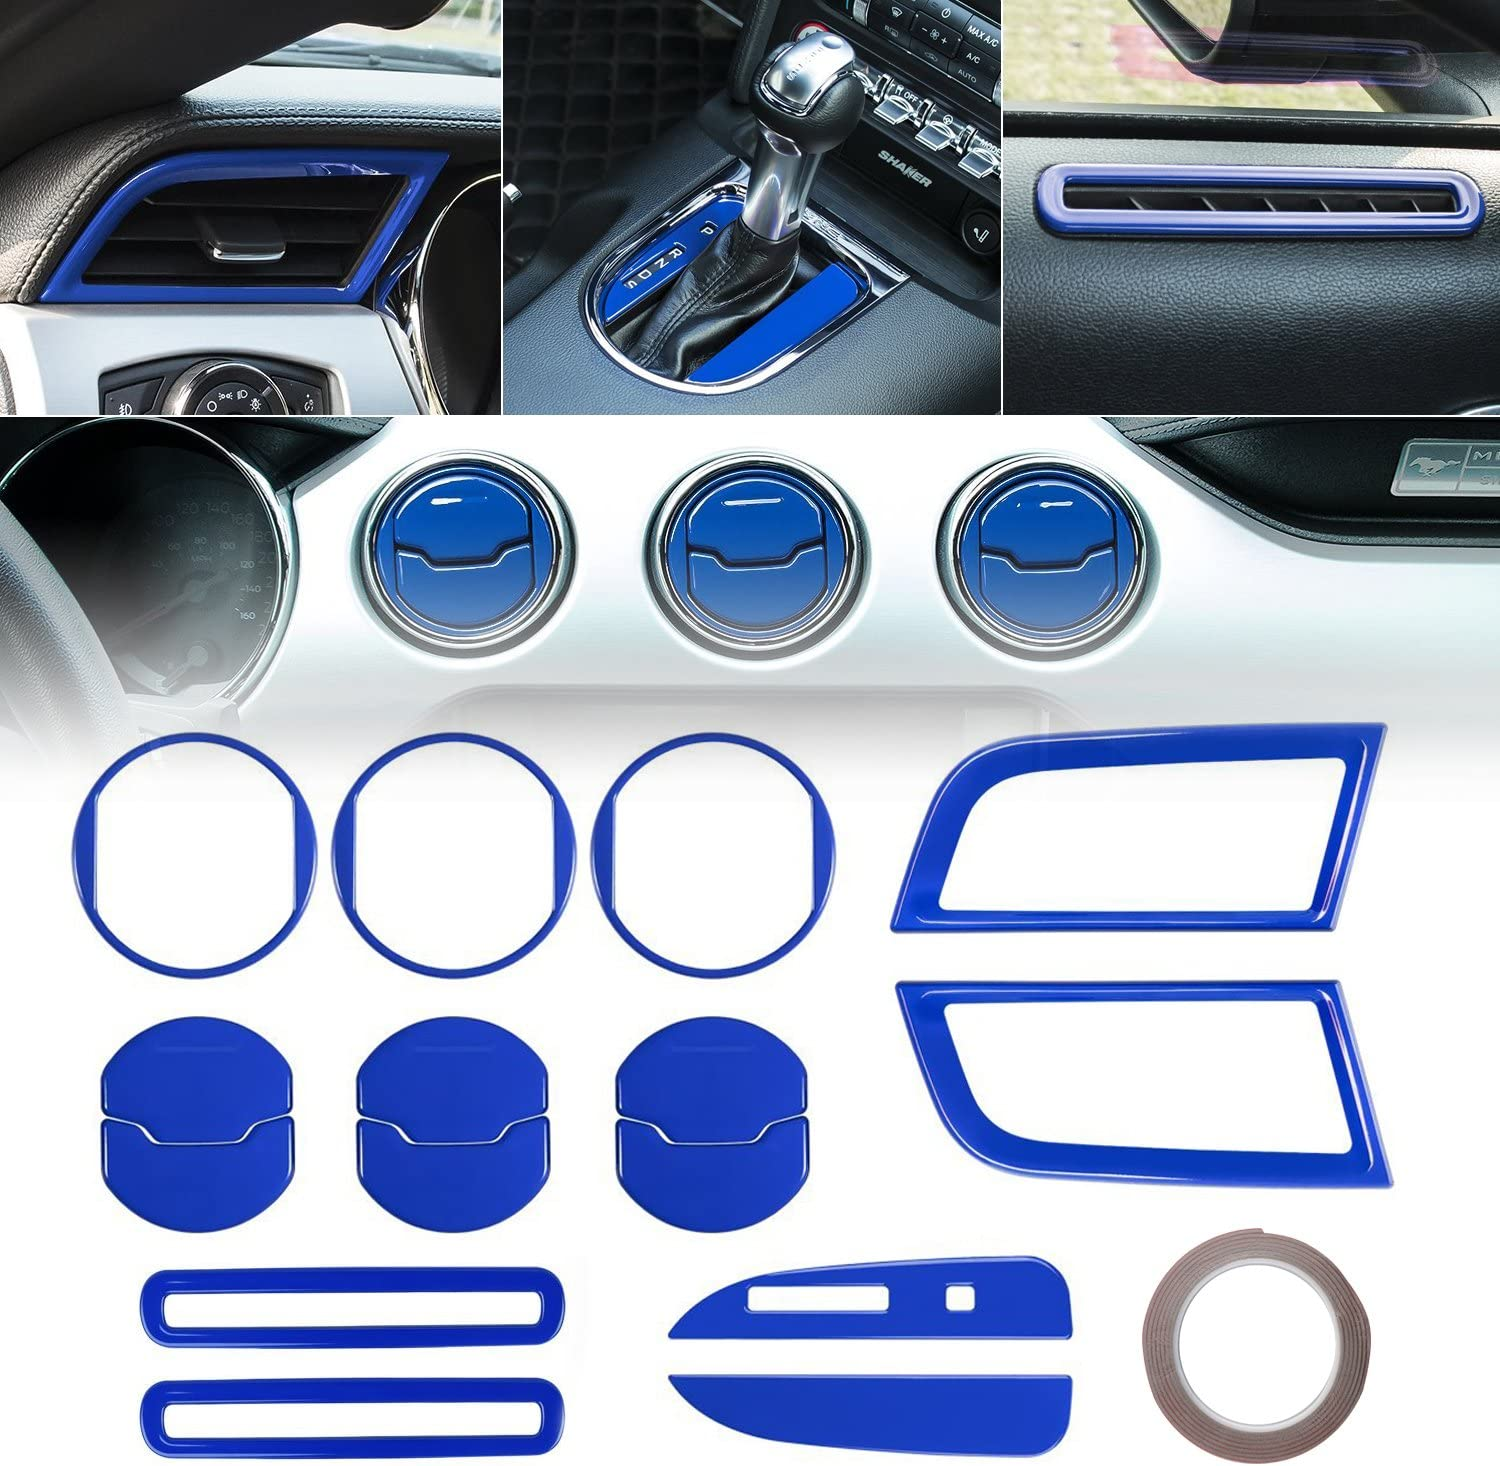 15 PCS Accessories Decoration Set Console Central for 2015 2016 2017 2018 Ford Mustang Interior Door Chrome Shift Gear Box Switch Button Cover Trim Dash Board Side Air Conditioner Outlet Vent